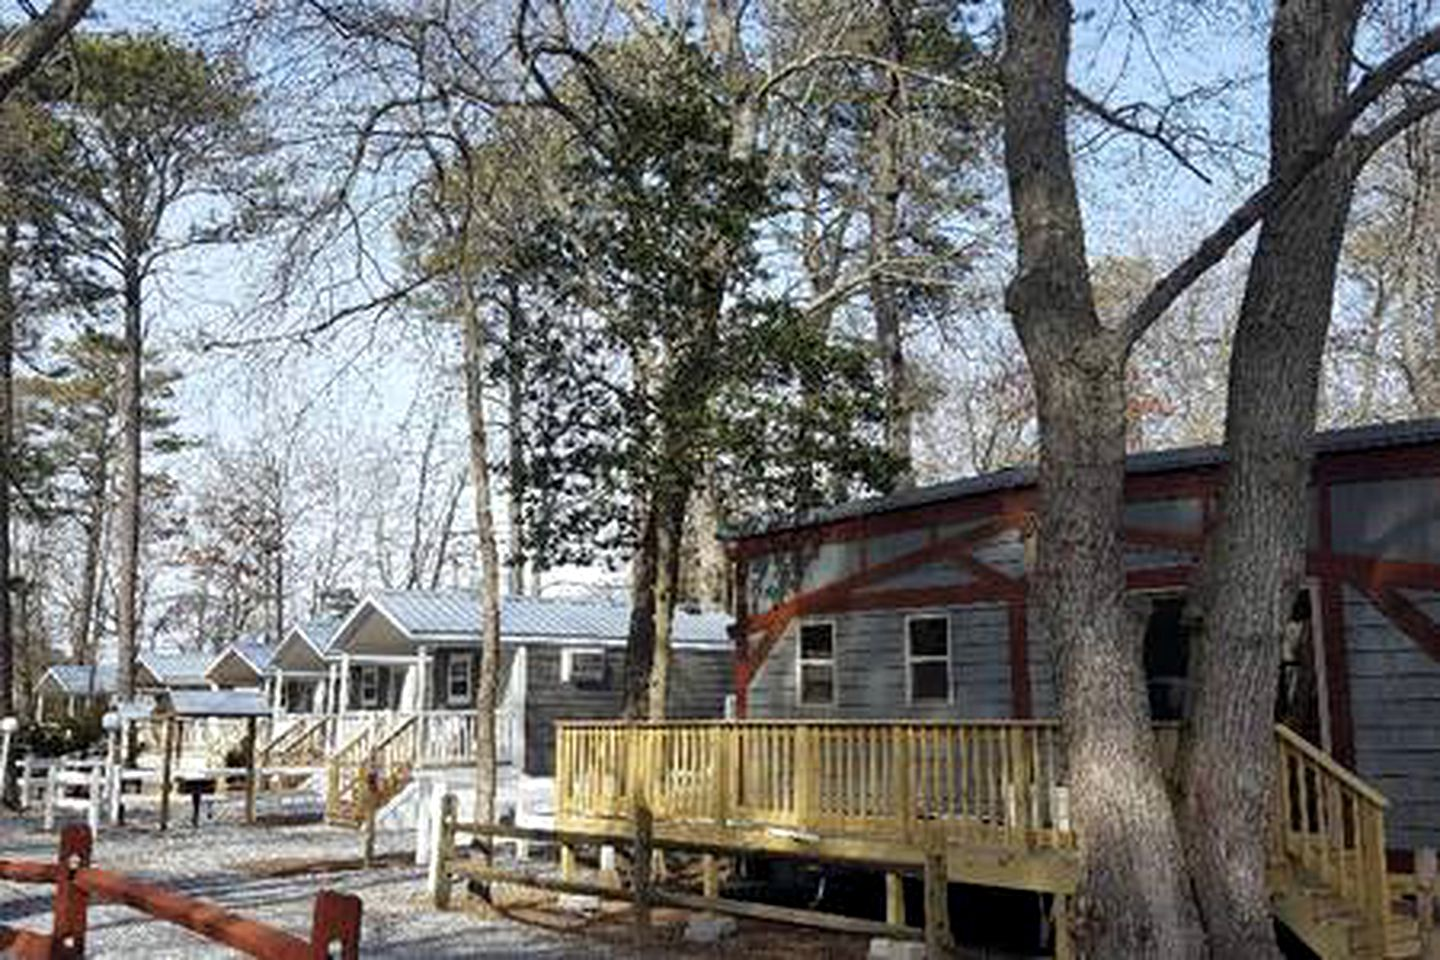 Tiny Houses (Cape May, New Jersey, United States)